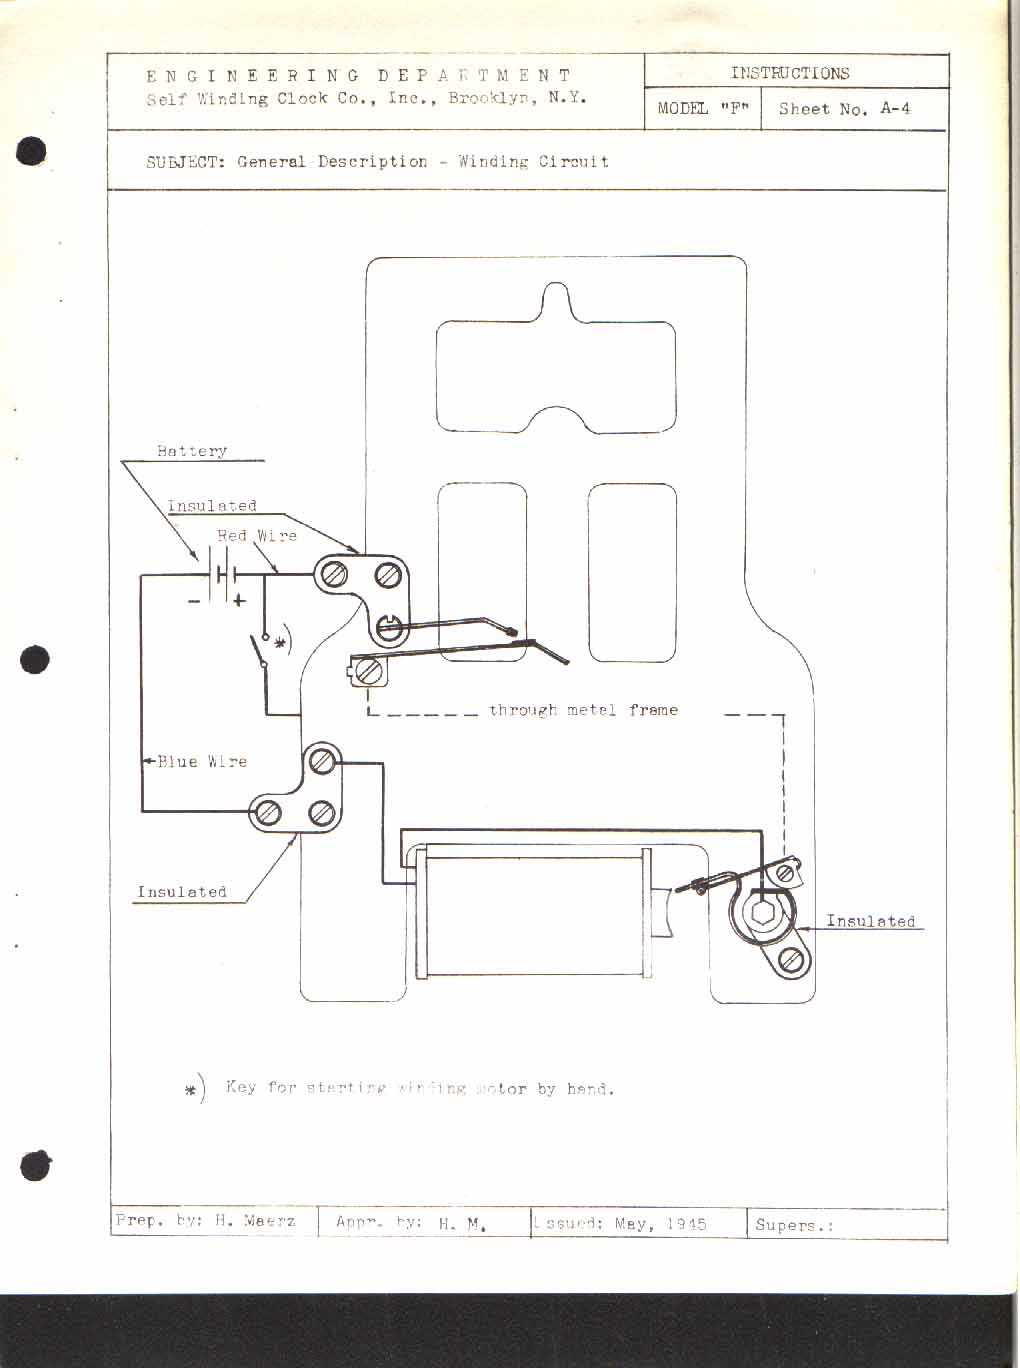 SWCC05 ftl design electric clocks self winding clock company self winding clock wiring diagram at gsmx.co